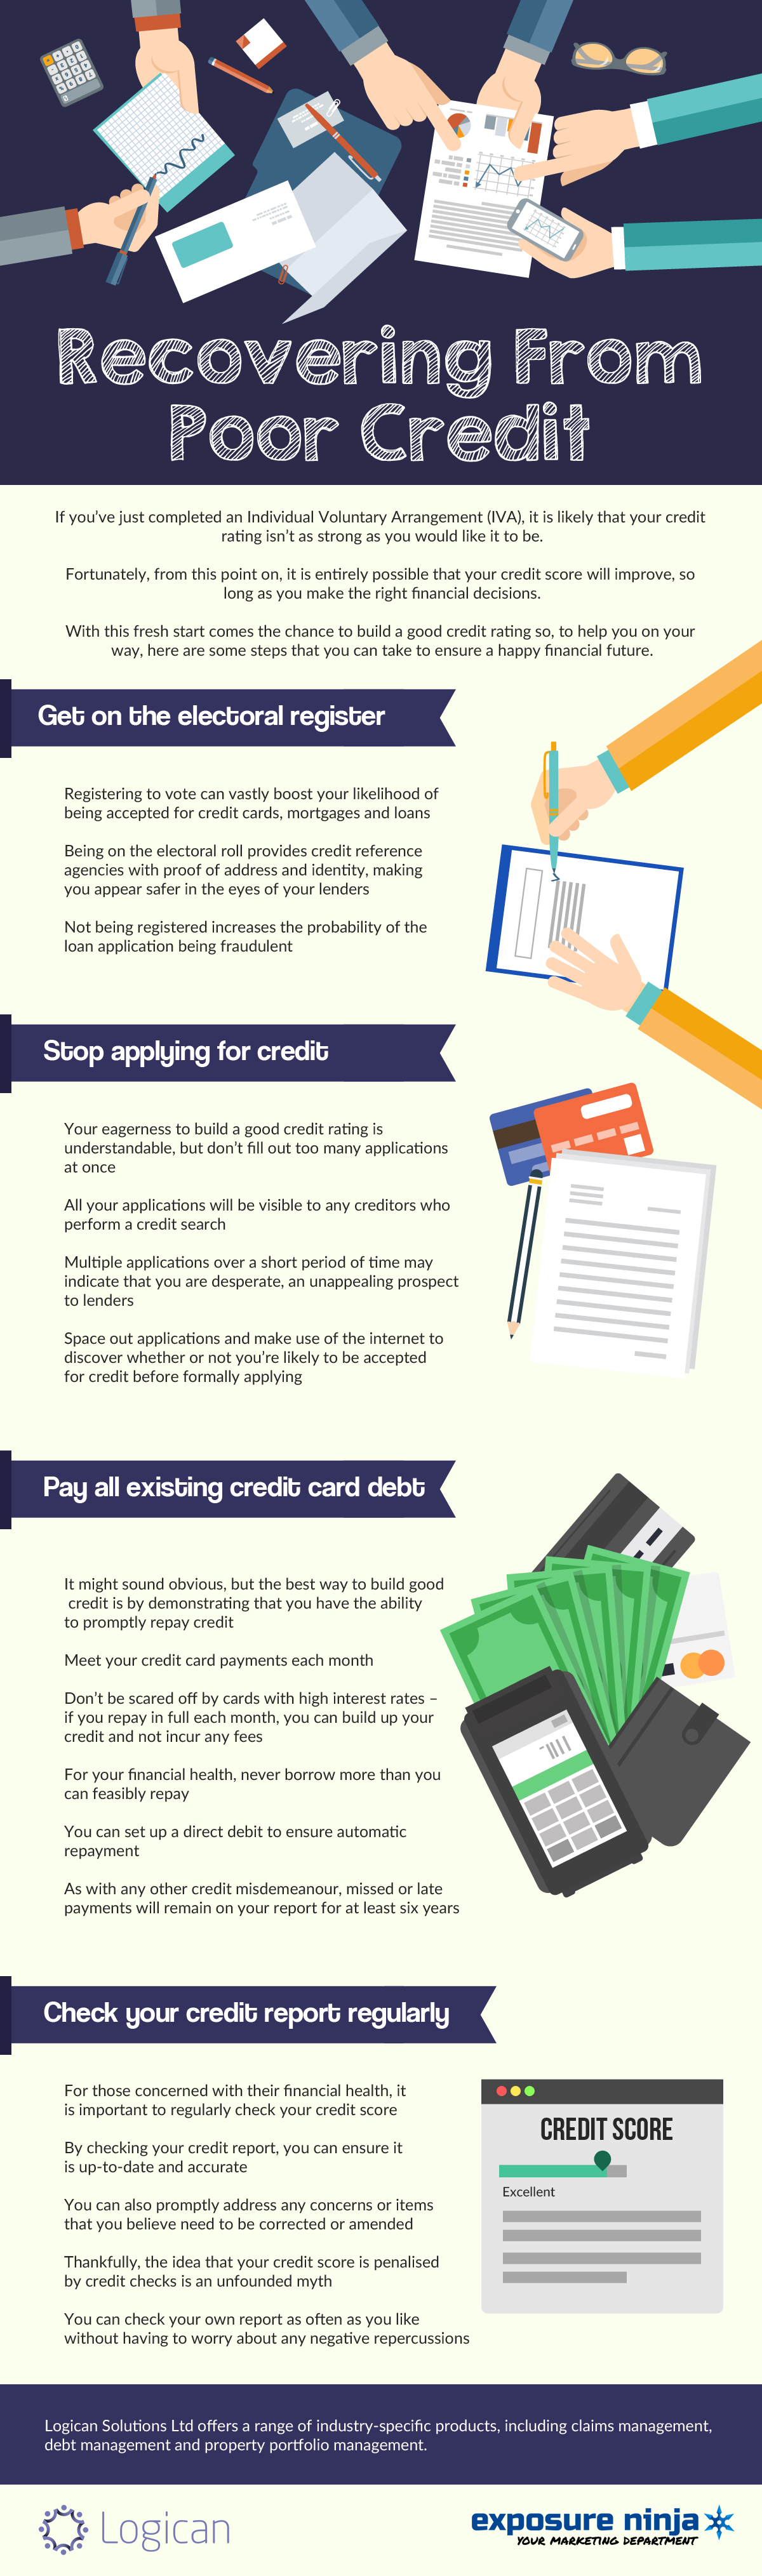 Recovering from poor credit infographic